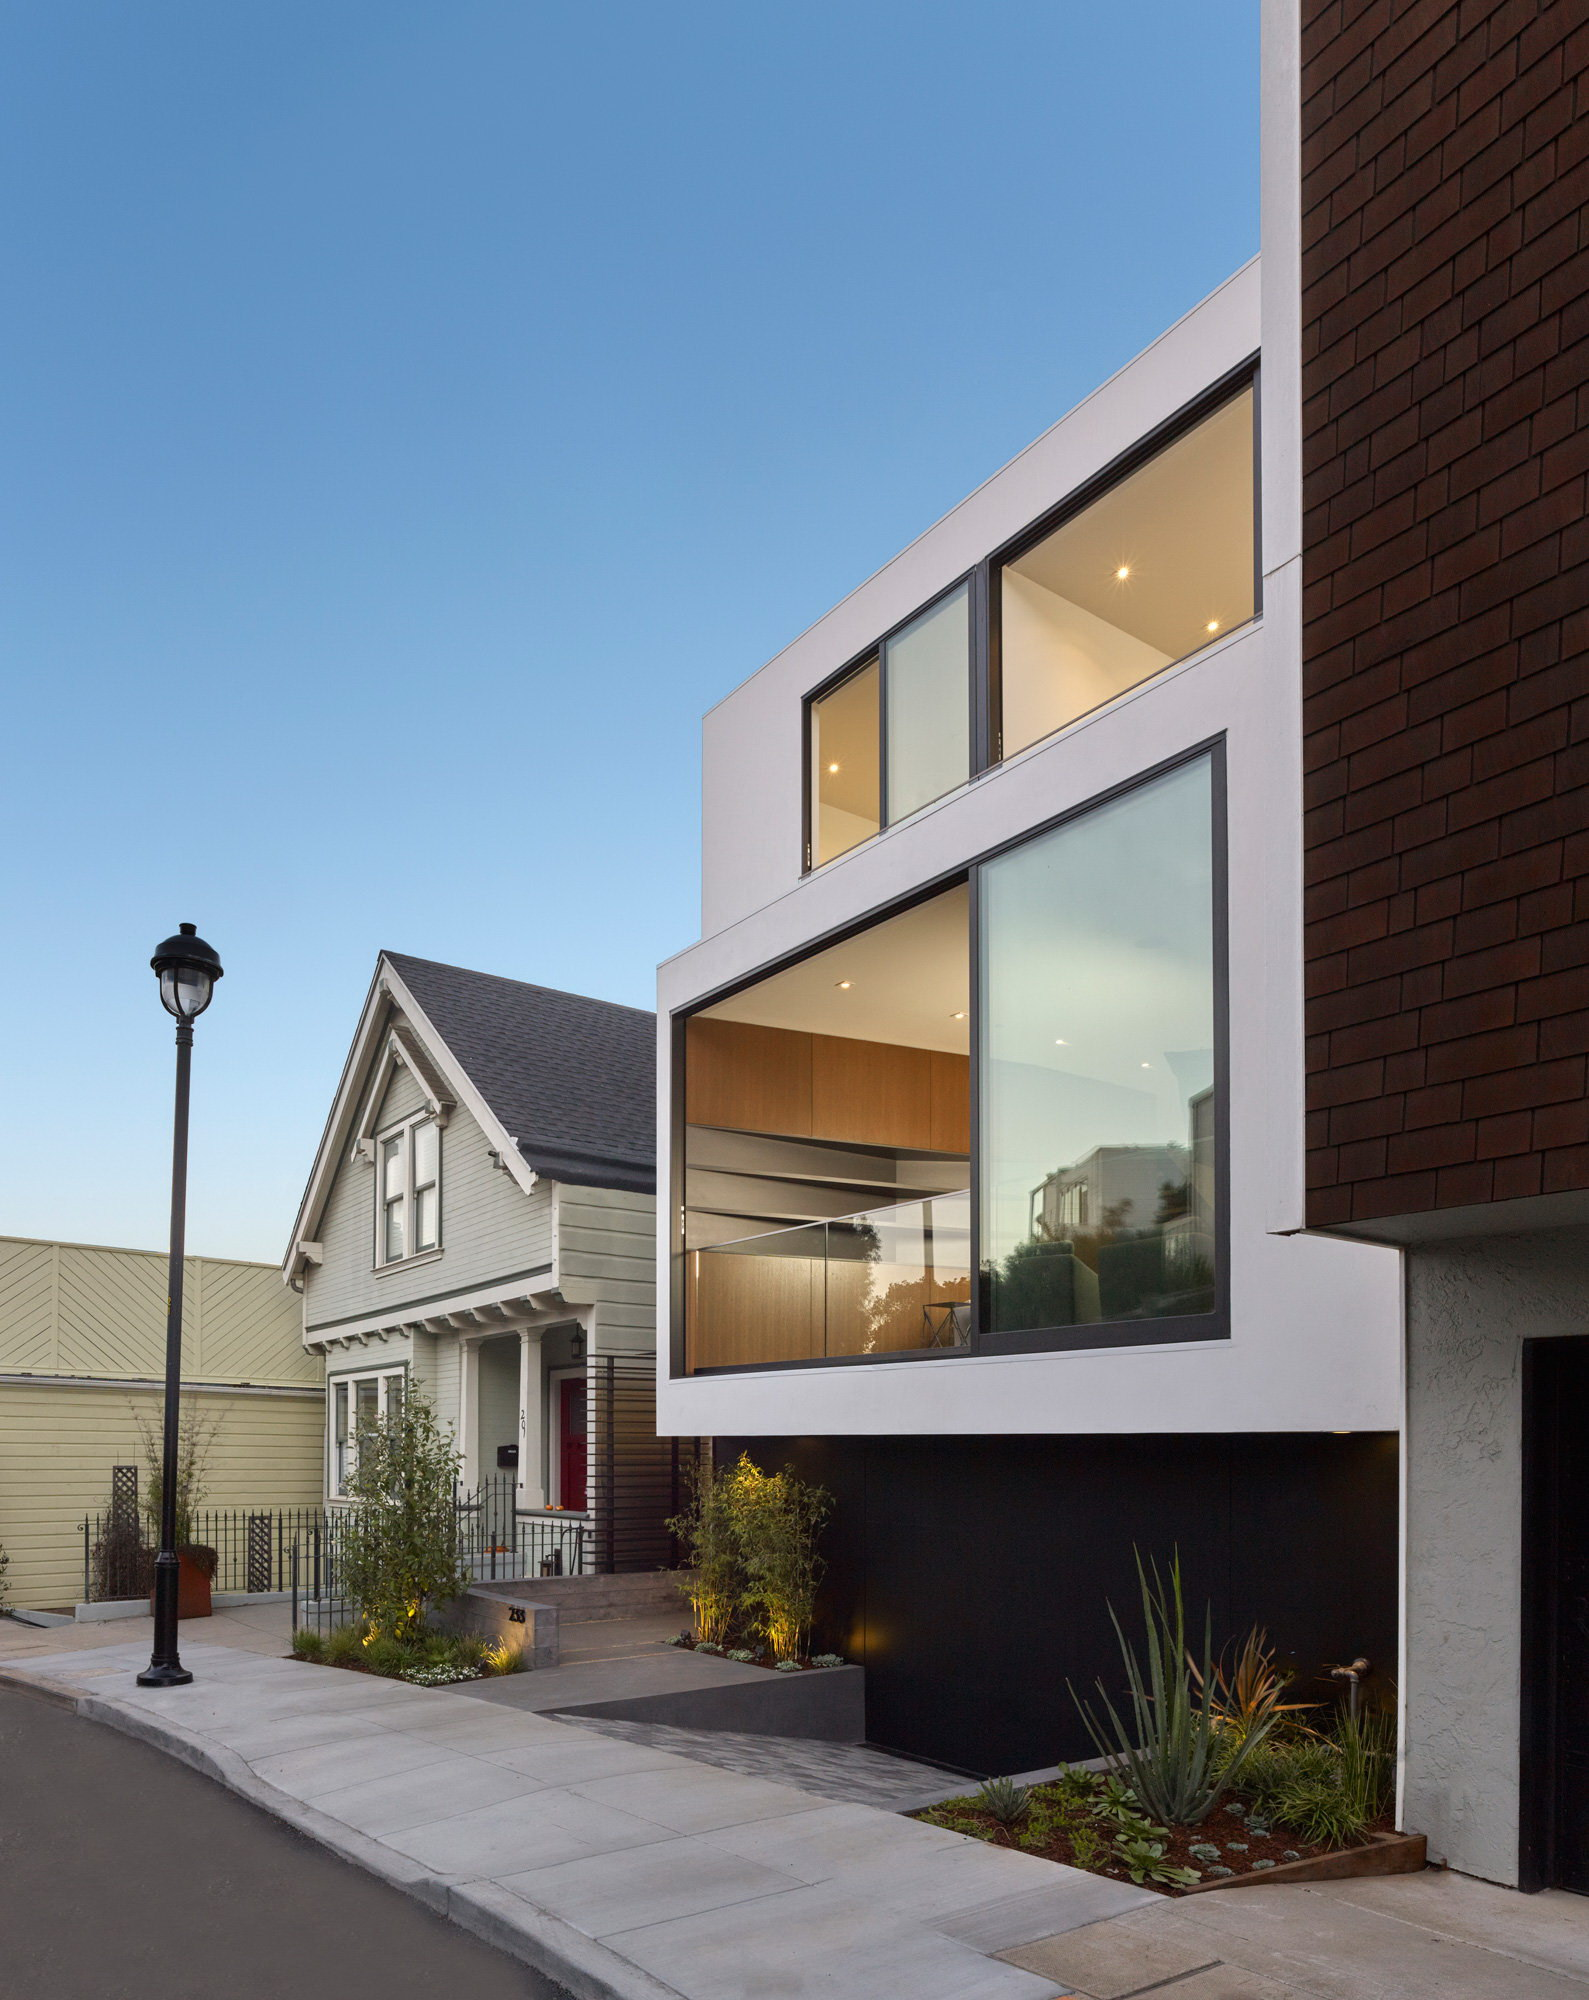 Laidley Street Residence by Michael Hennessey Architecture